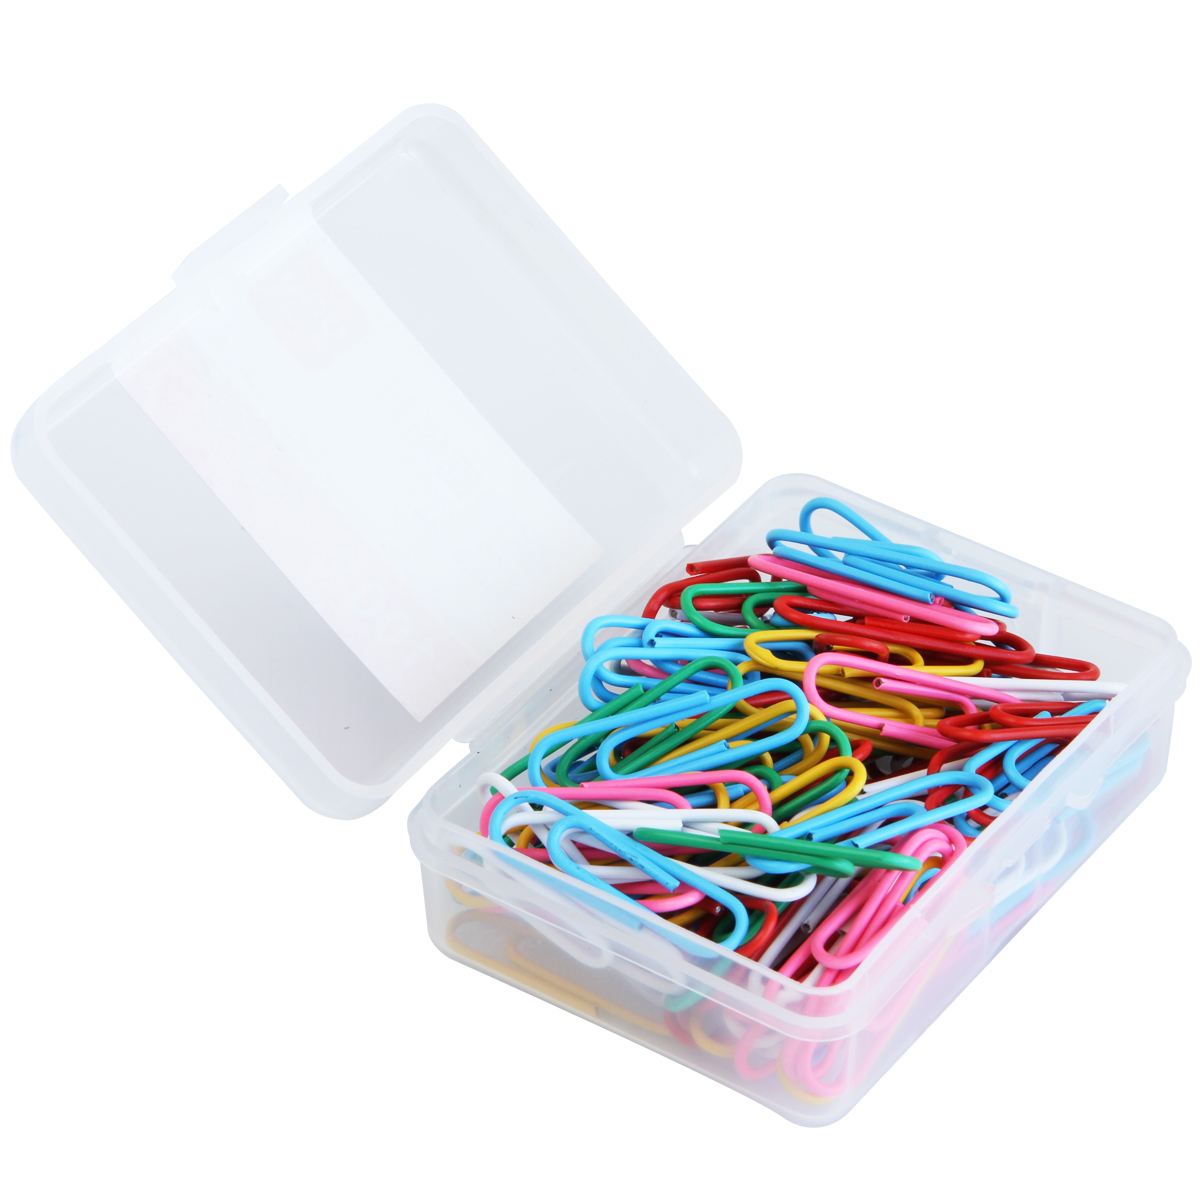 Colored paper clips deli deli 0024 colored paper clips paperclip office supplies stationery 29mm